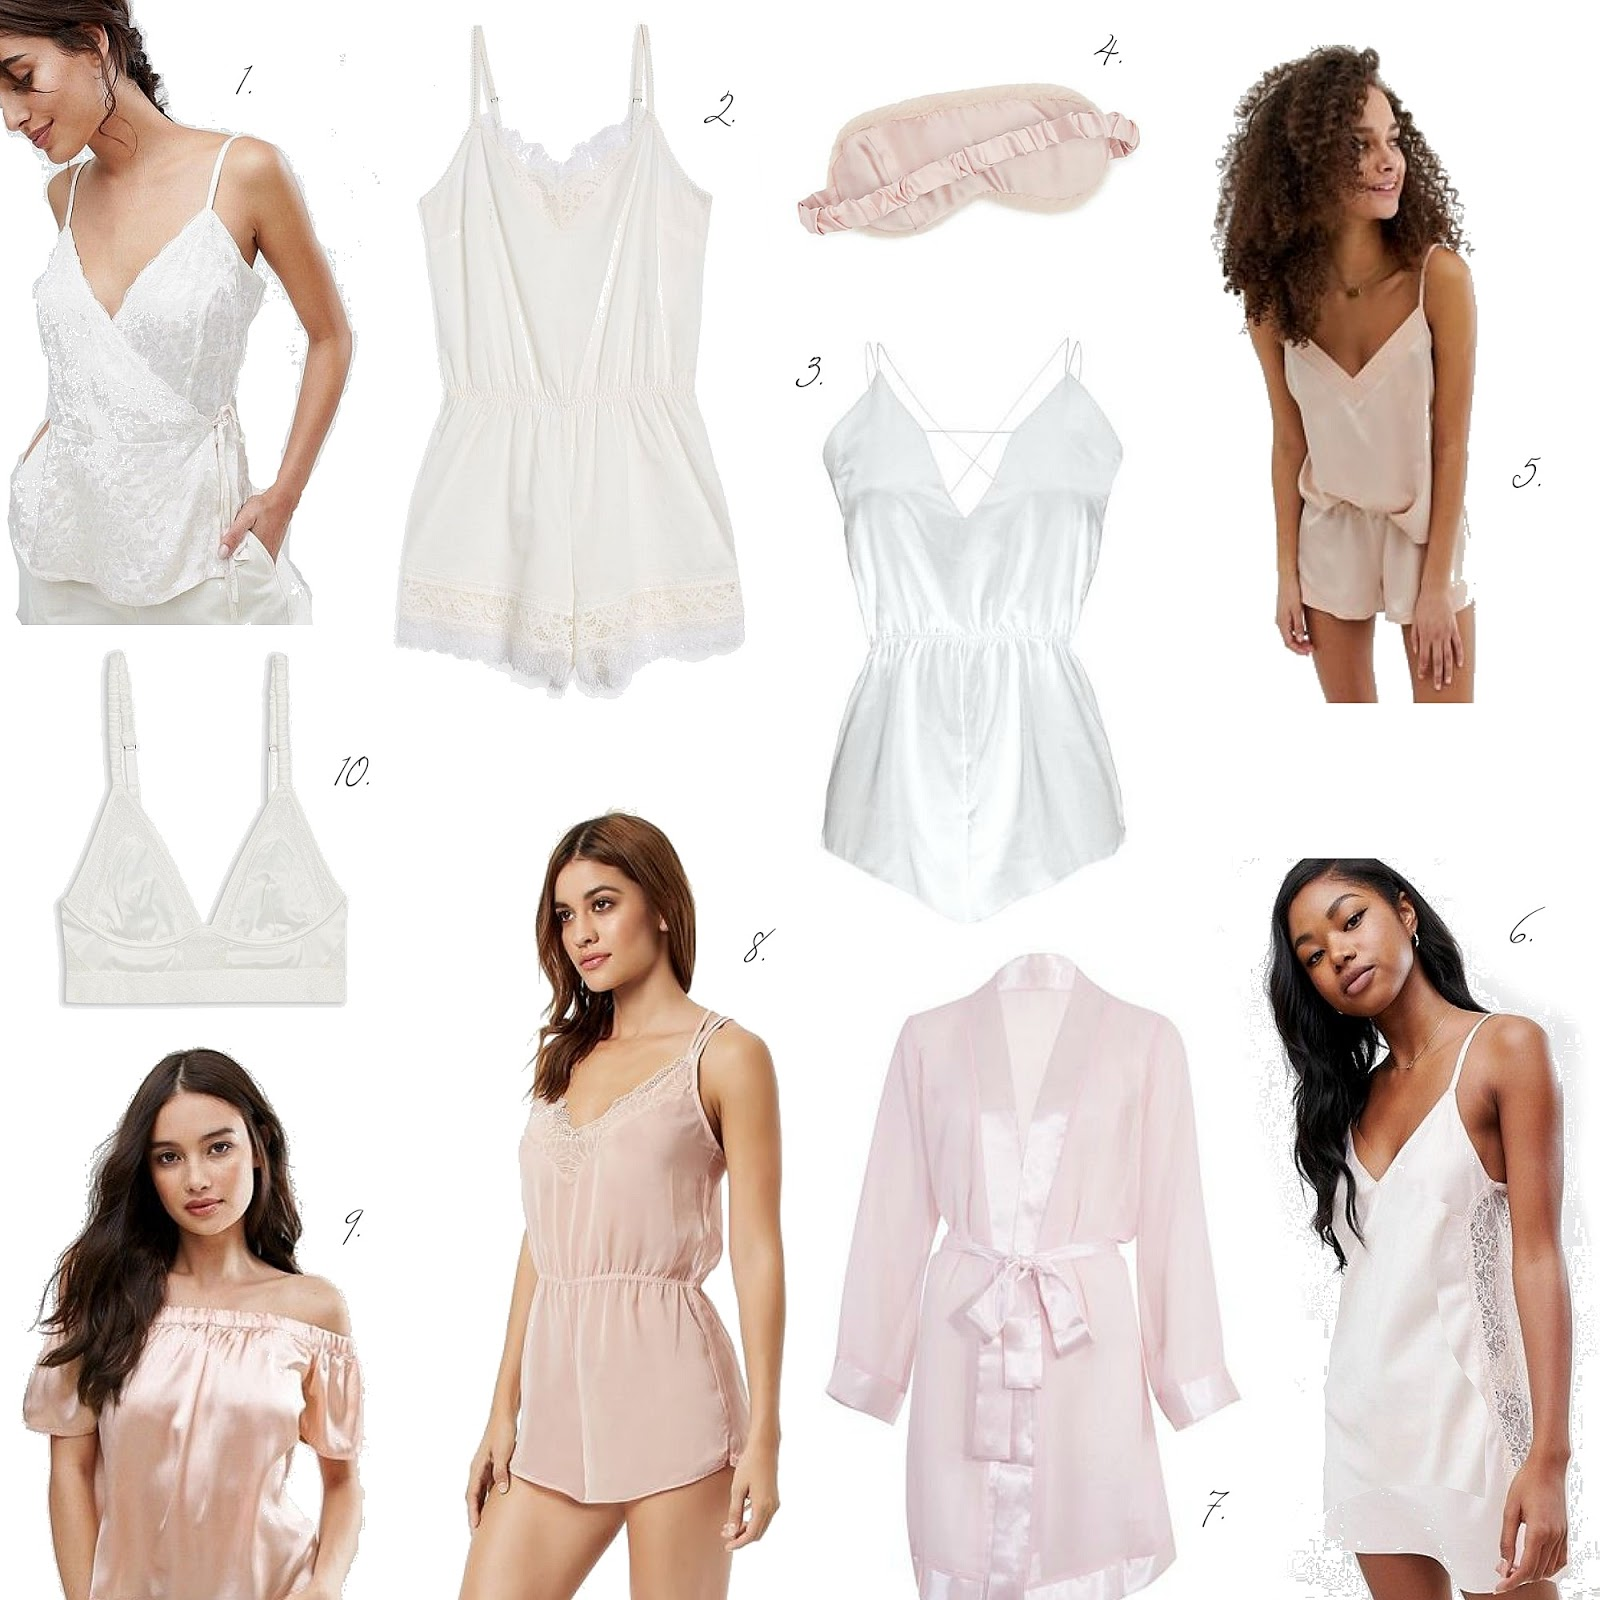 Marie Antoinette inspired silky, satin pyjamas and nightwear wishlist